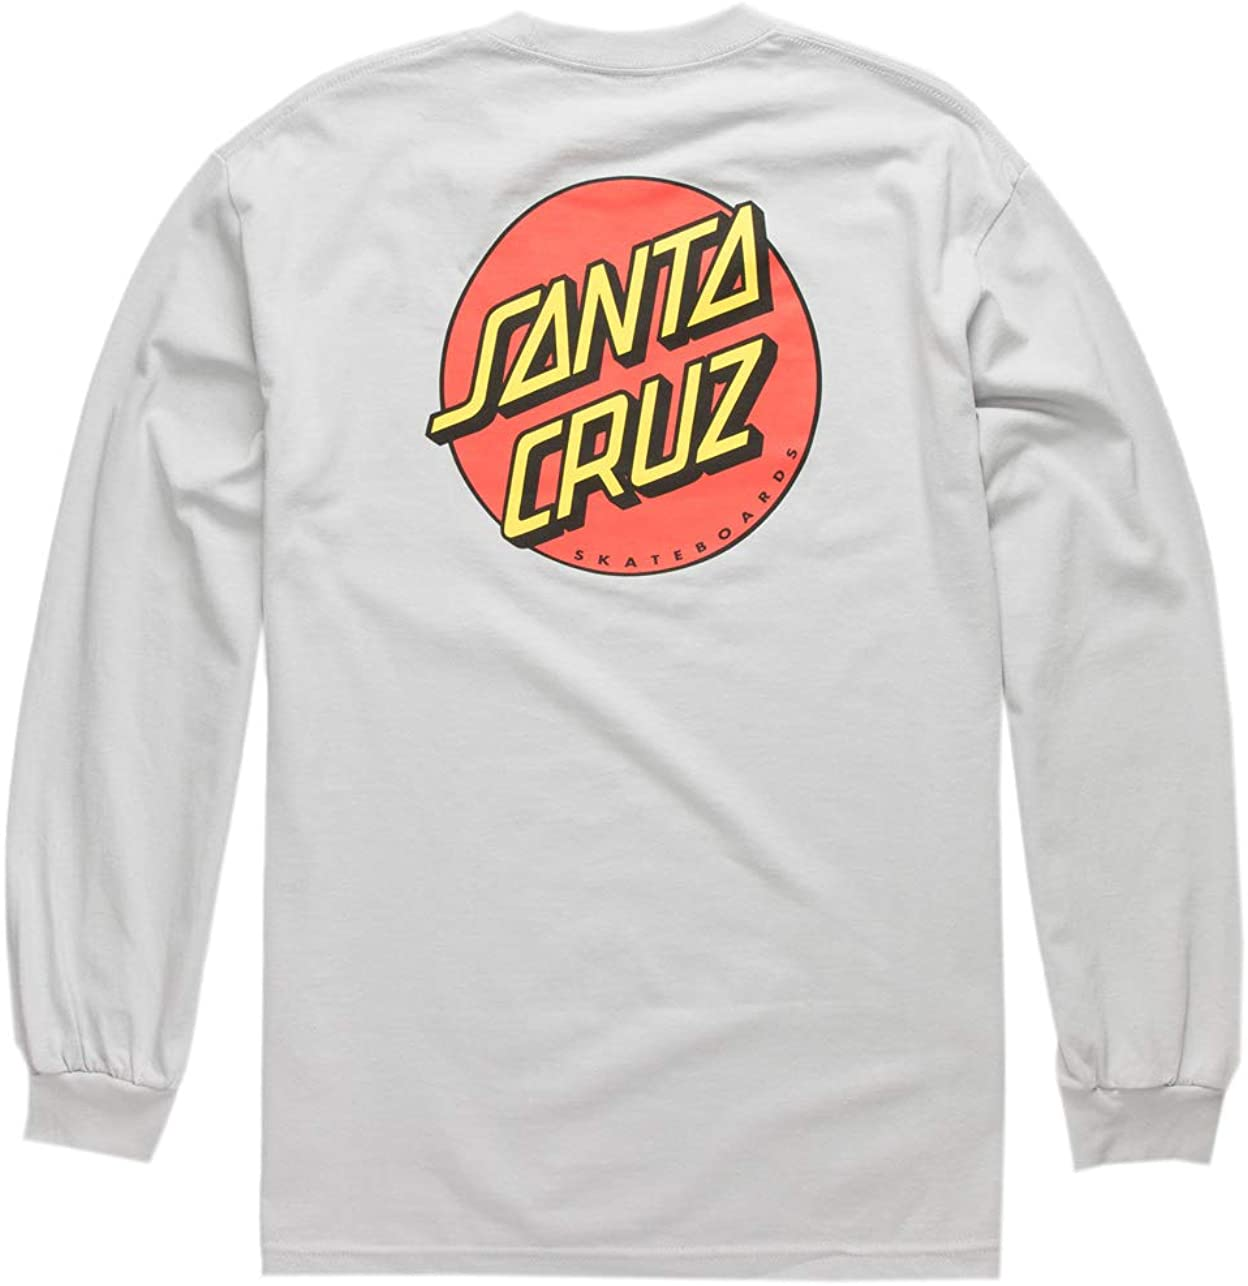 Santa Cruz Men's Classic L/S Shirts,Medium,Silver